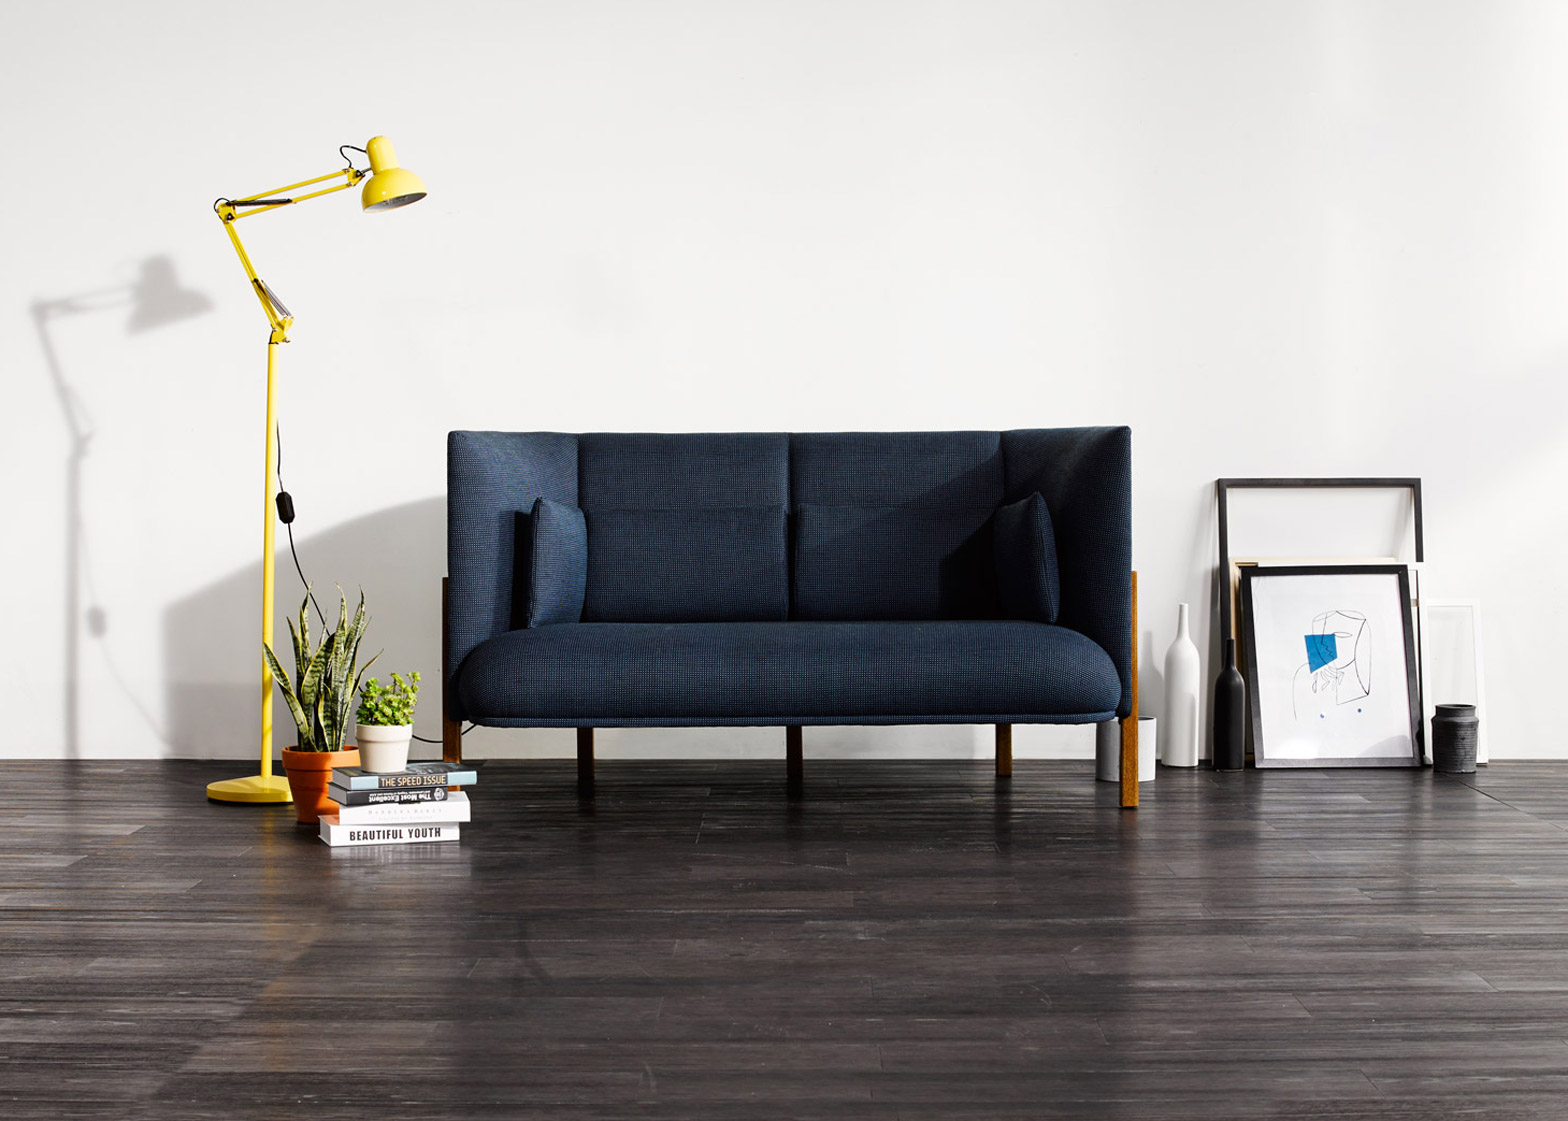 A living area scene with a dark blue-upholstered, high-backed sofa, yellow flow lamp with articulated arm, a stack of books, frames, and other small home goods.